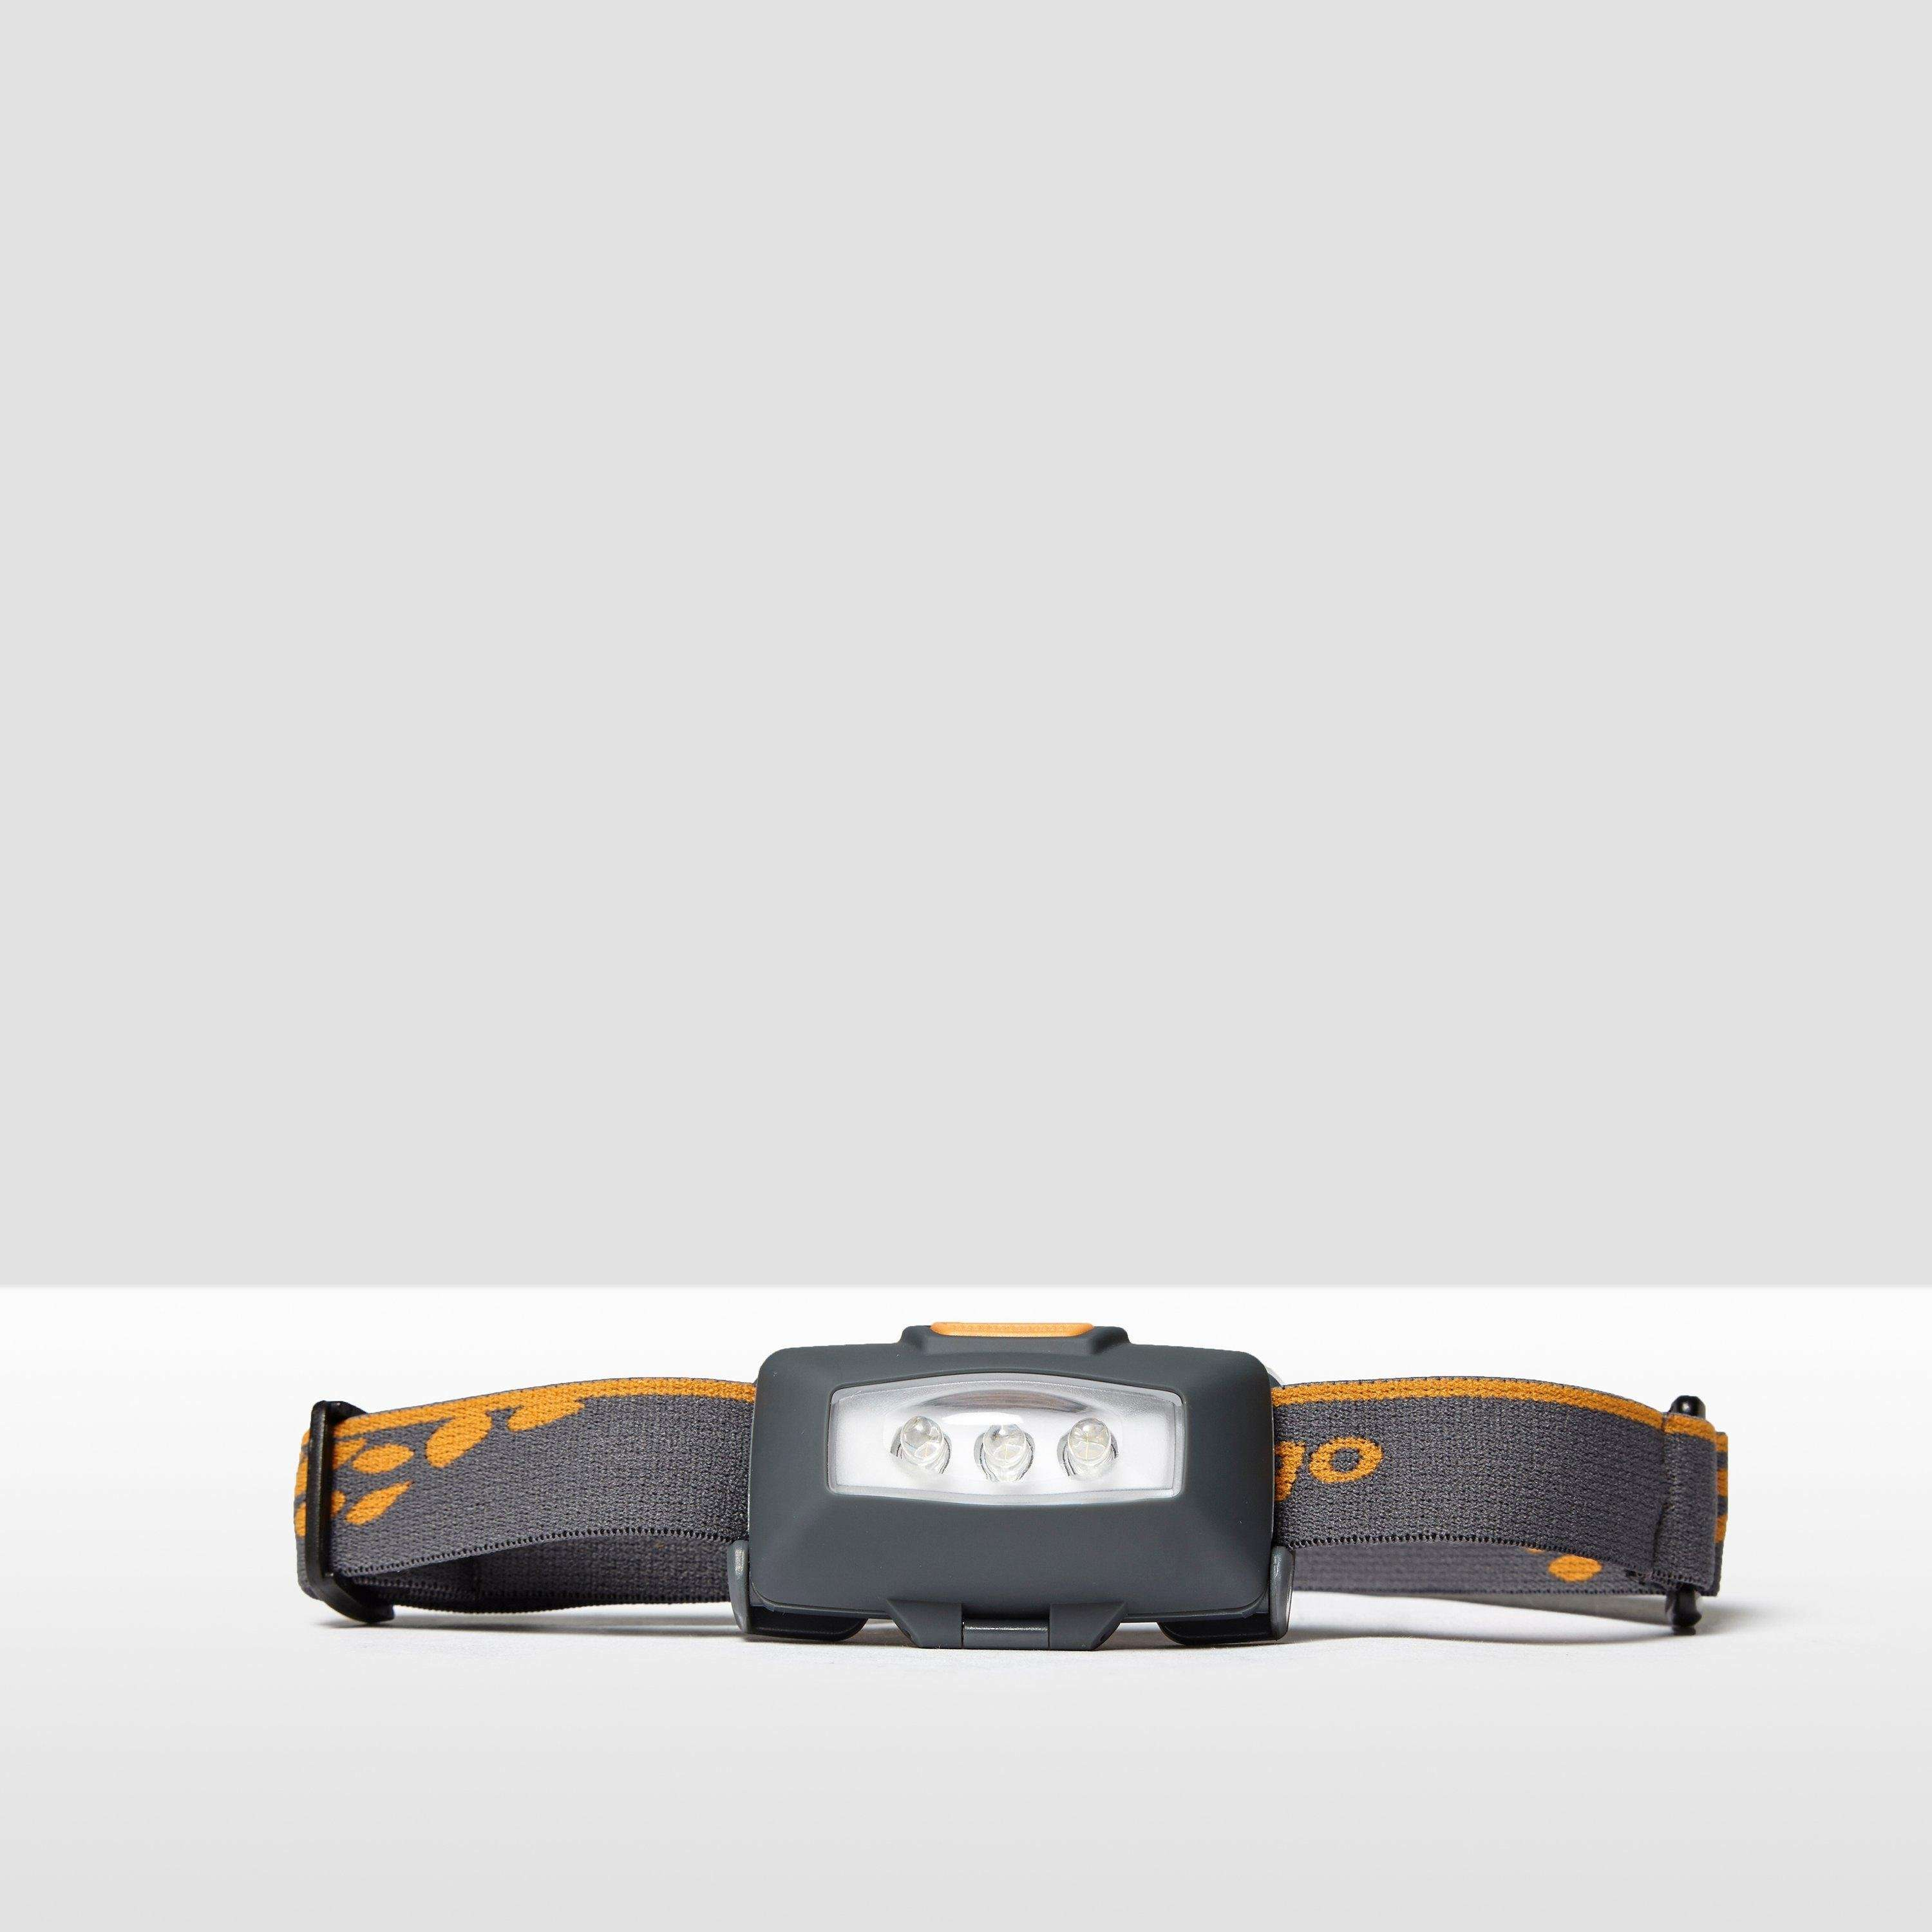 VANGO Corvus 20 Headtorch